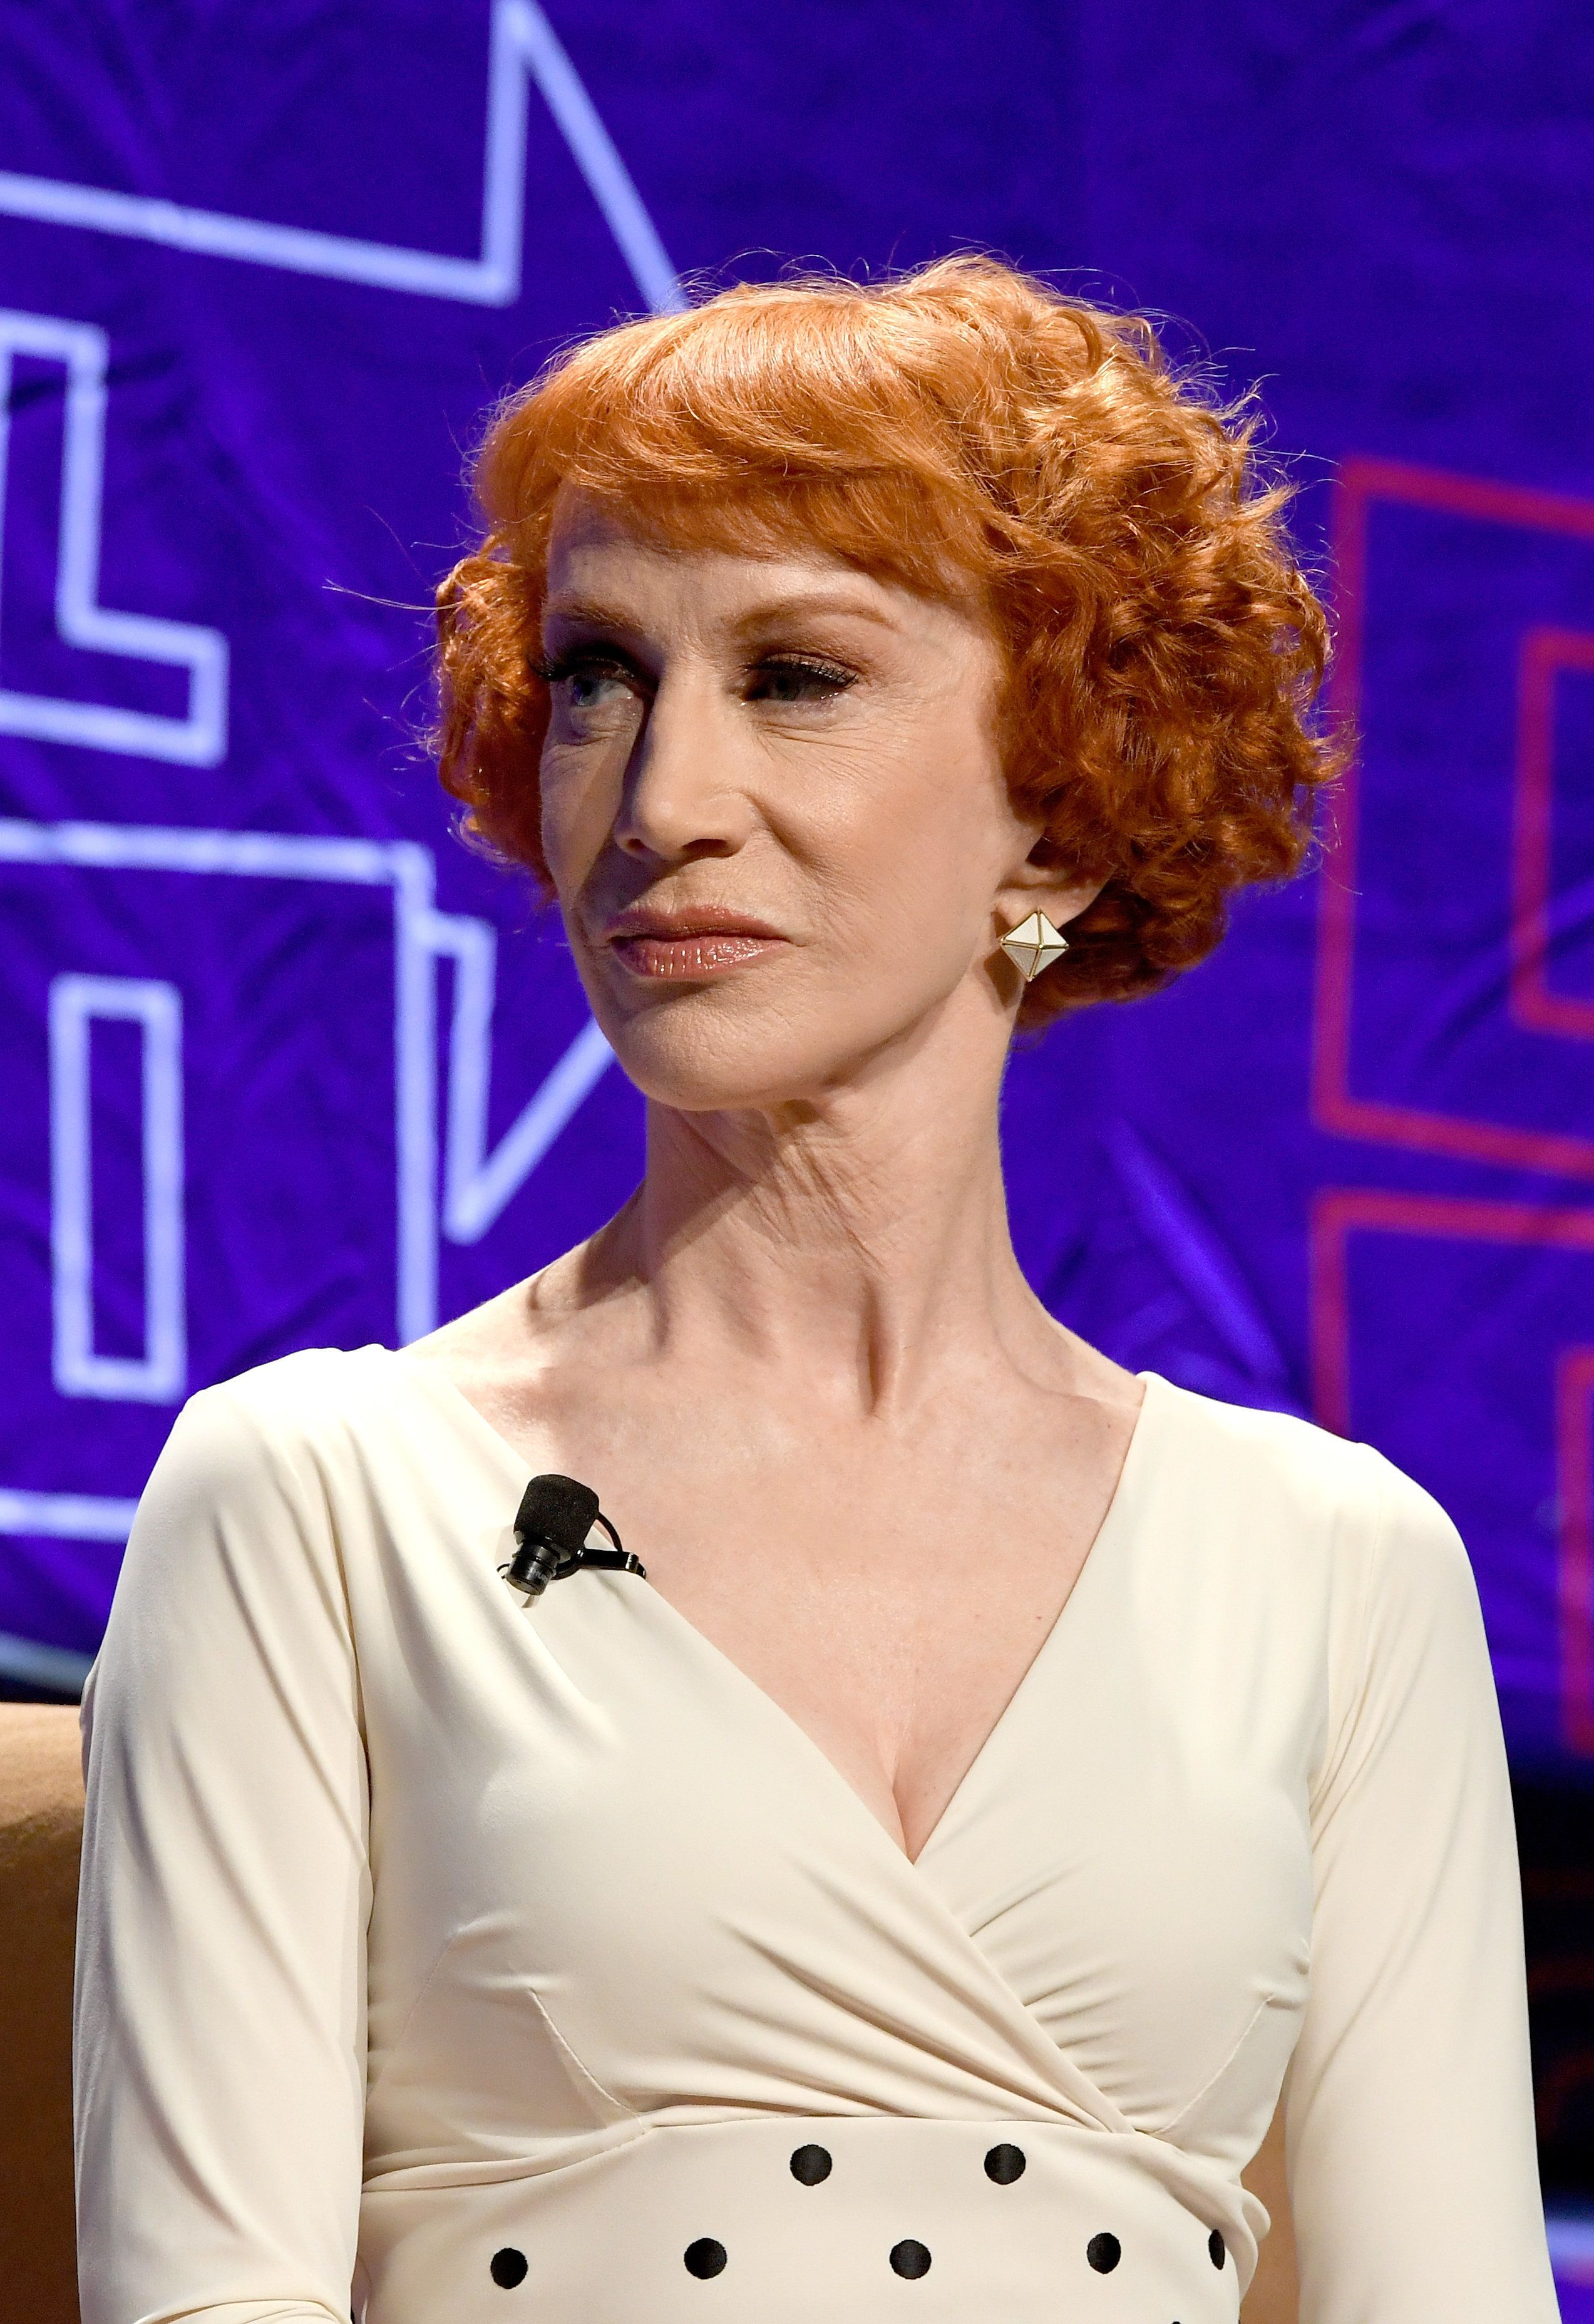 LOS ANGELES, CA - OCTOBER 20:  Kathy Griffin speaks onstage at Politicon 2018 at Los Angeles Convention Center on October 20, 2018 in Los Angeles, California.  (Photo by Michael S. Schwartz/Getty Images)